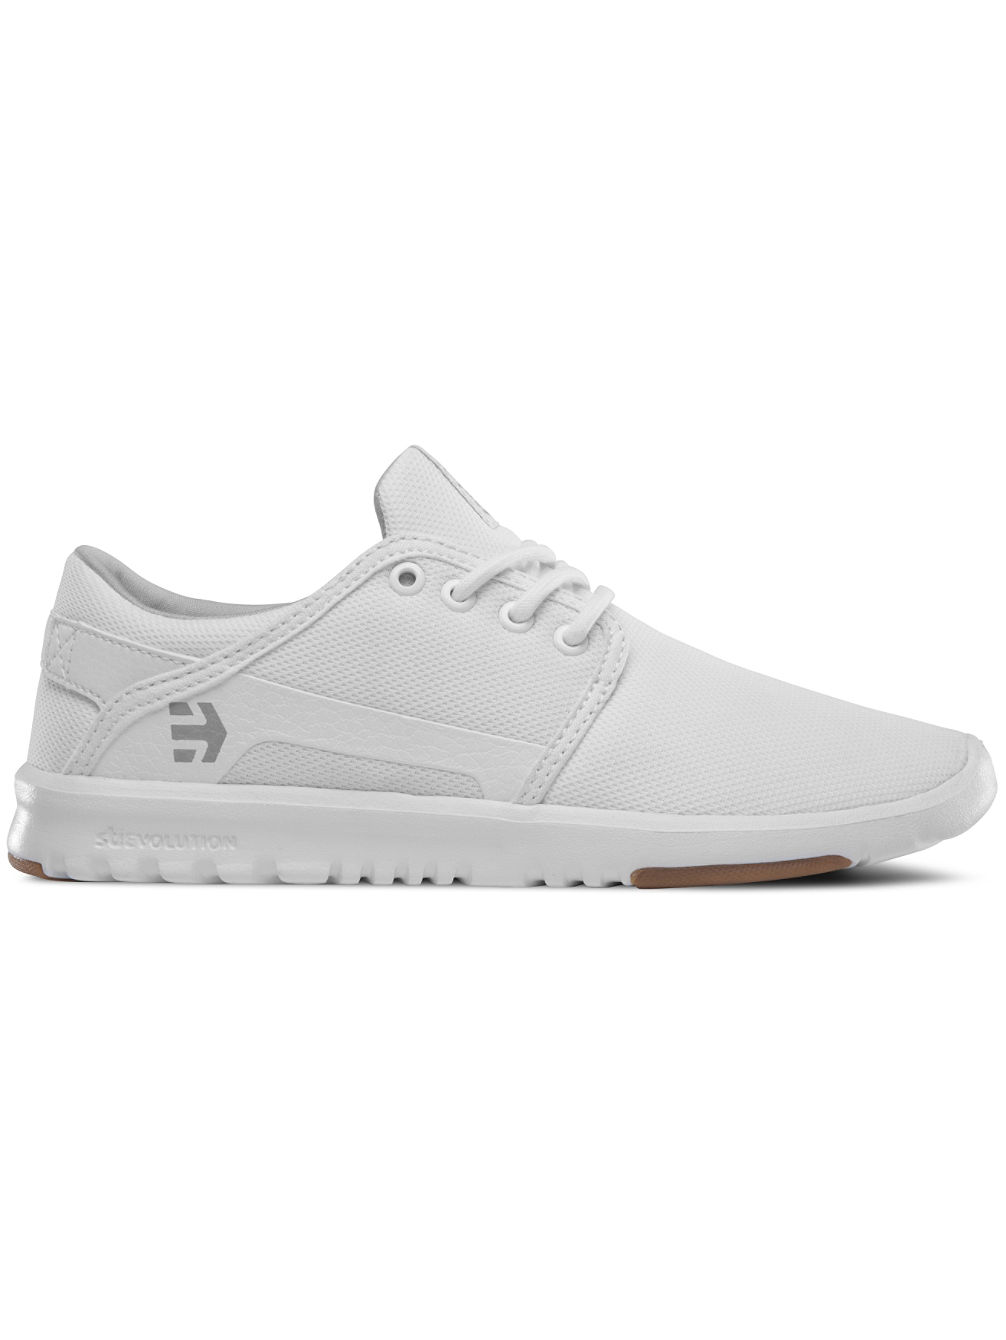 etnies-scout-sneakers-women